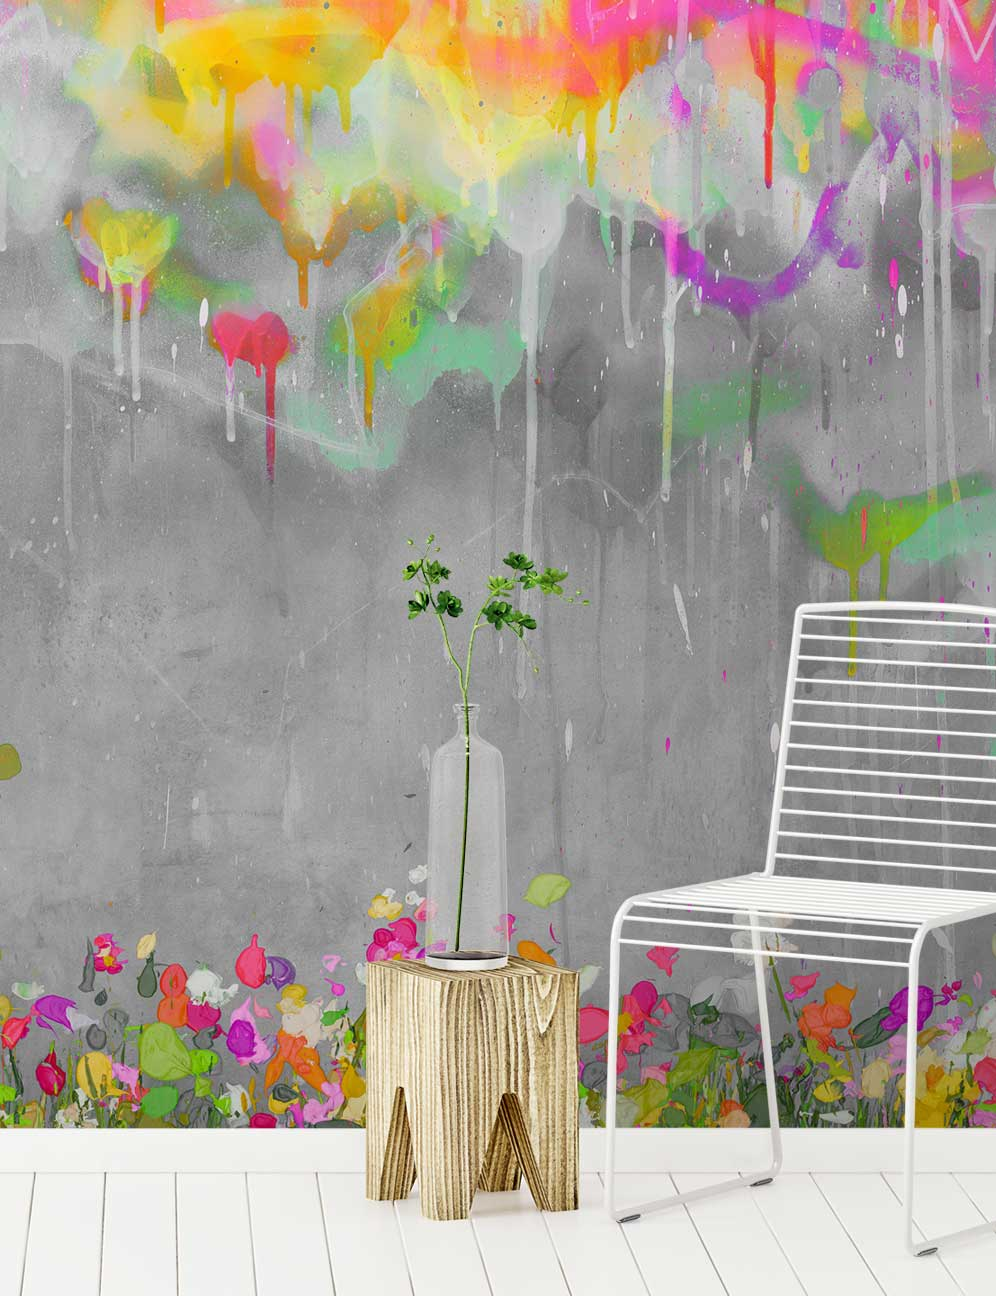 Graffiti Wallpaper And Wall Murals Are A Great Way To Freshen Up Your Home Give Living Room Or Bedroom An Urban Edge The Street Art Trend Is High